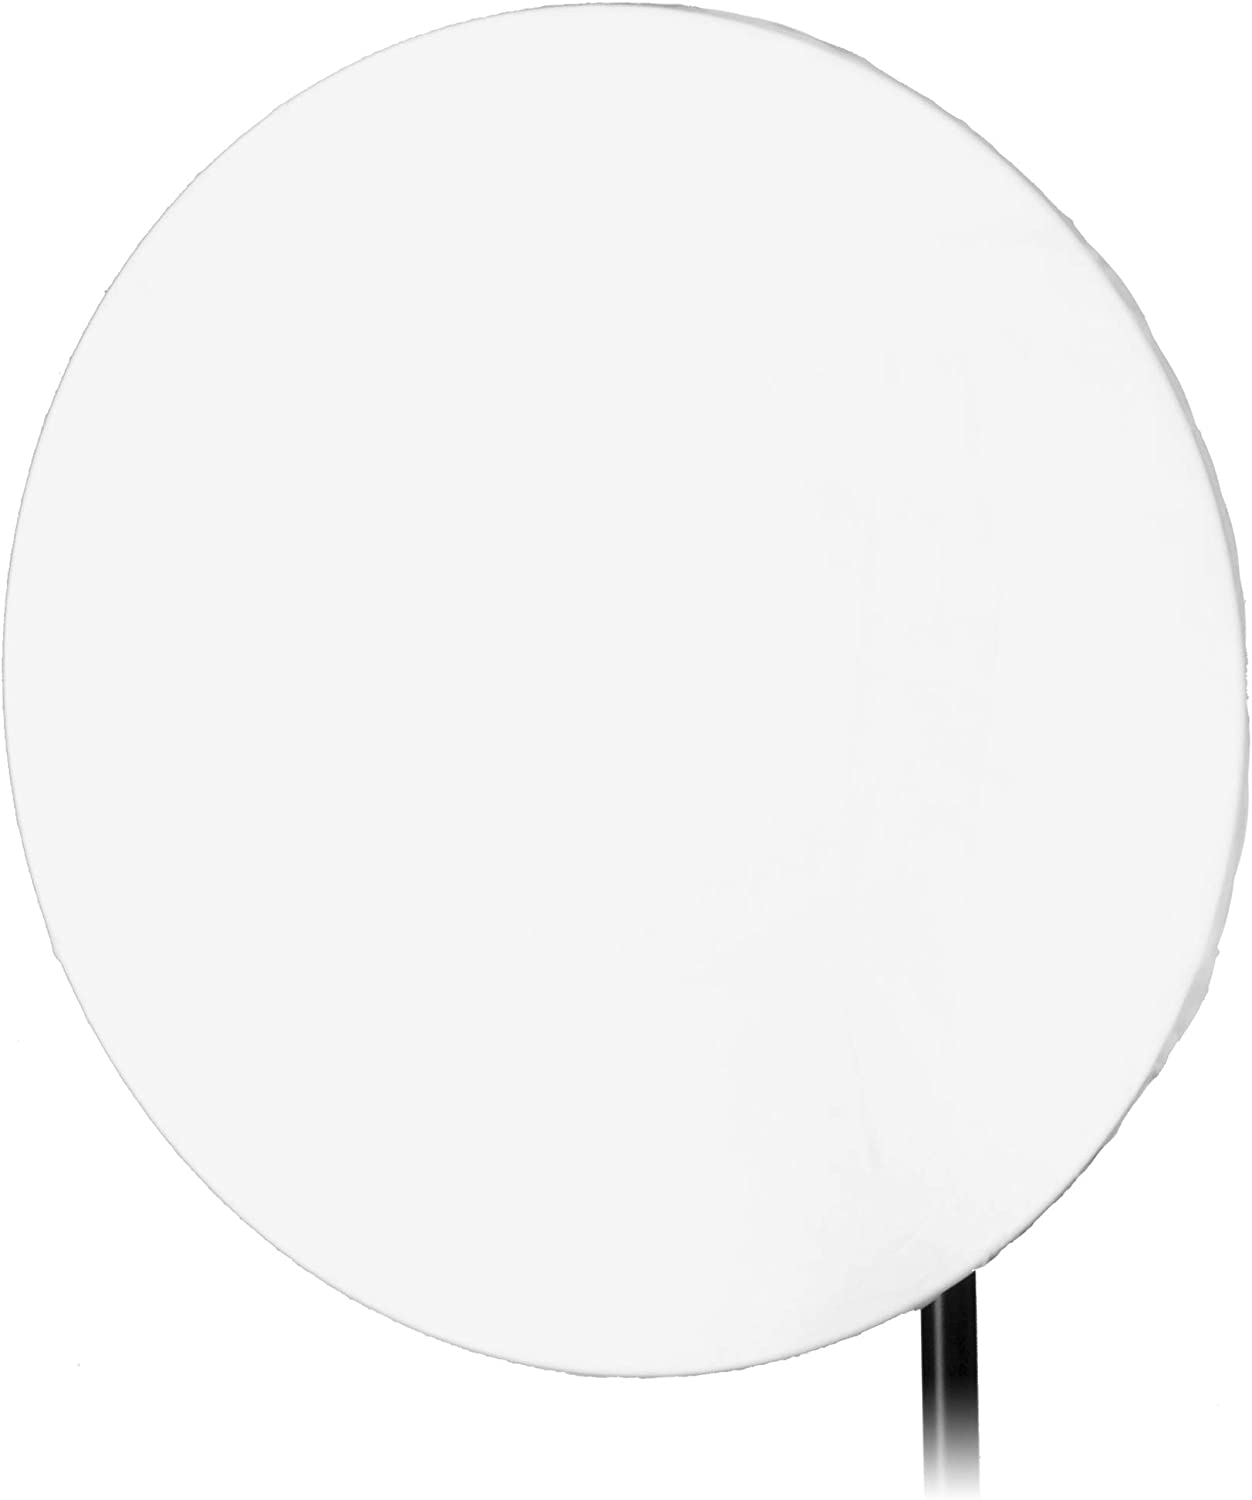 Fotodiox Pro 22in 55cm All Metal Beauty Dish with Norman 900 Insert Soft White Interior